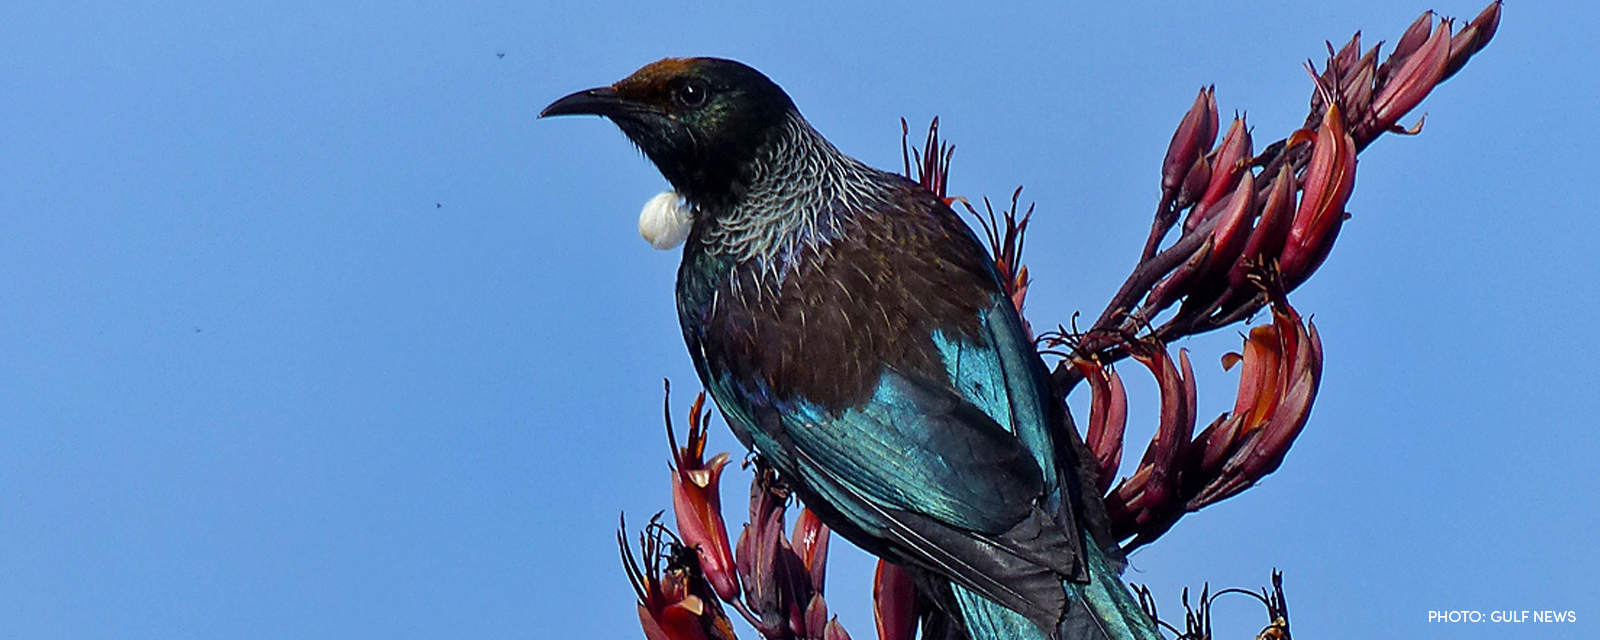 tui-with credit.jpg